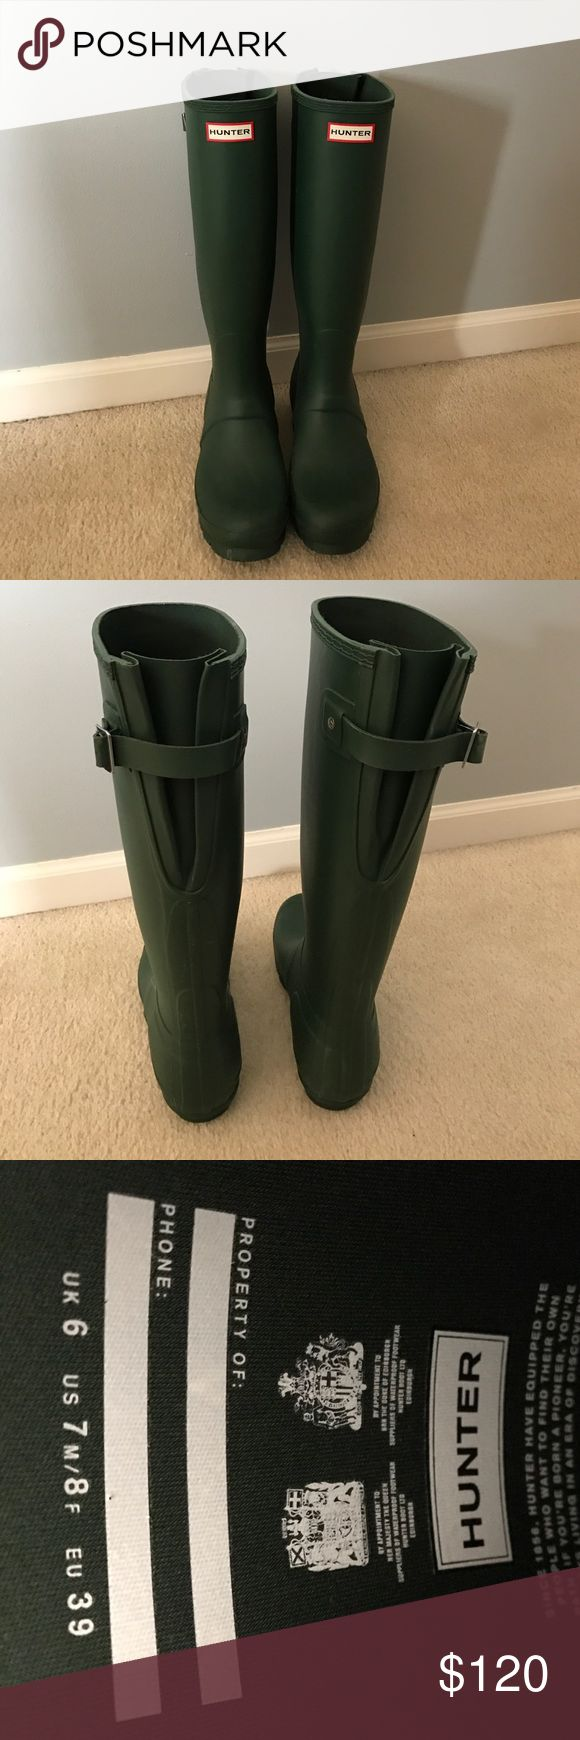 "Hunter Boots Original Adjustable Back Boots Women's Hunter Boots Original Adjustable Back Snow Rain Water Boots Unisex - Green - 8. Excellent condition- pretty much new. Worn once or twice but my feet grew with pregnancy                                        Rubber Rubber sole Shaft measures approximately 16"" from arch Hunter Original Adjustable Back Hunter Branding On Front Hunter Boots Shoes Winter & Rain Boots"